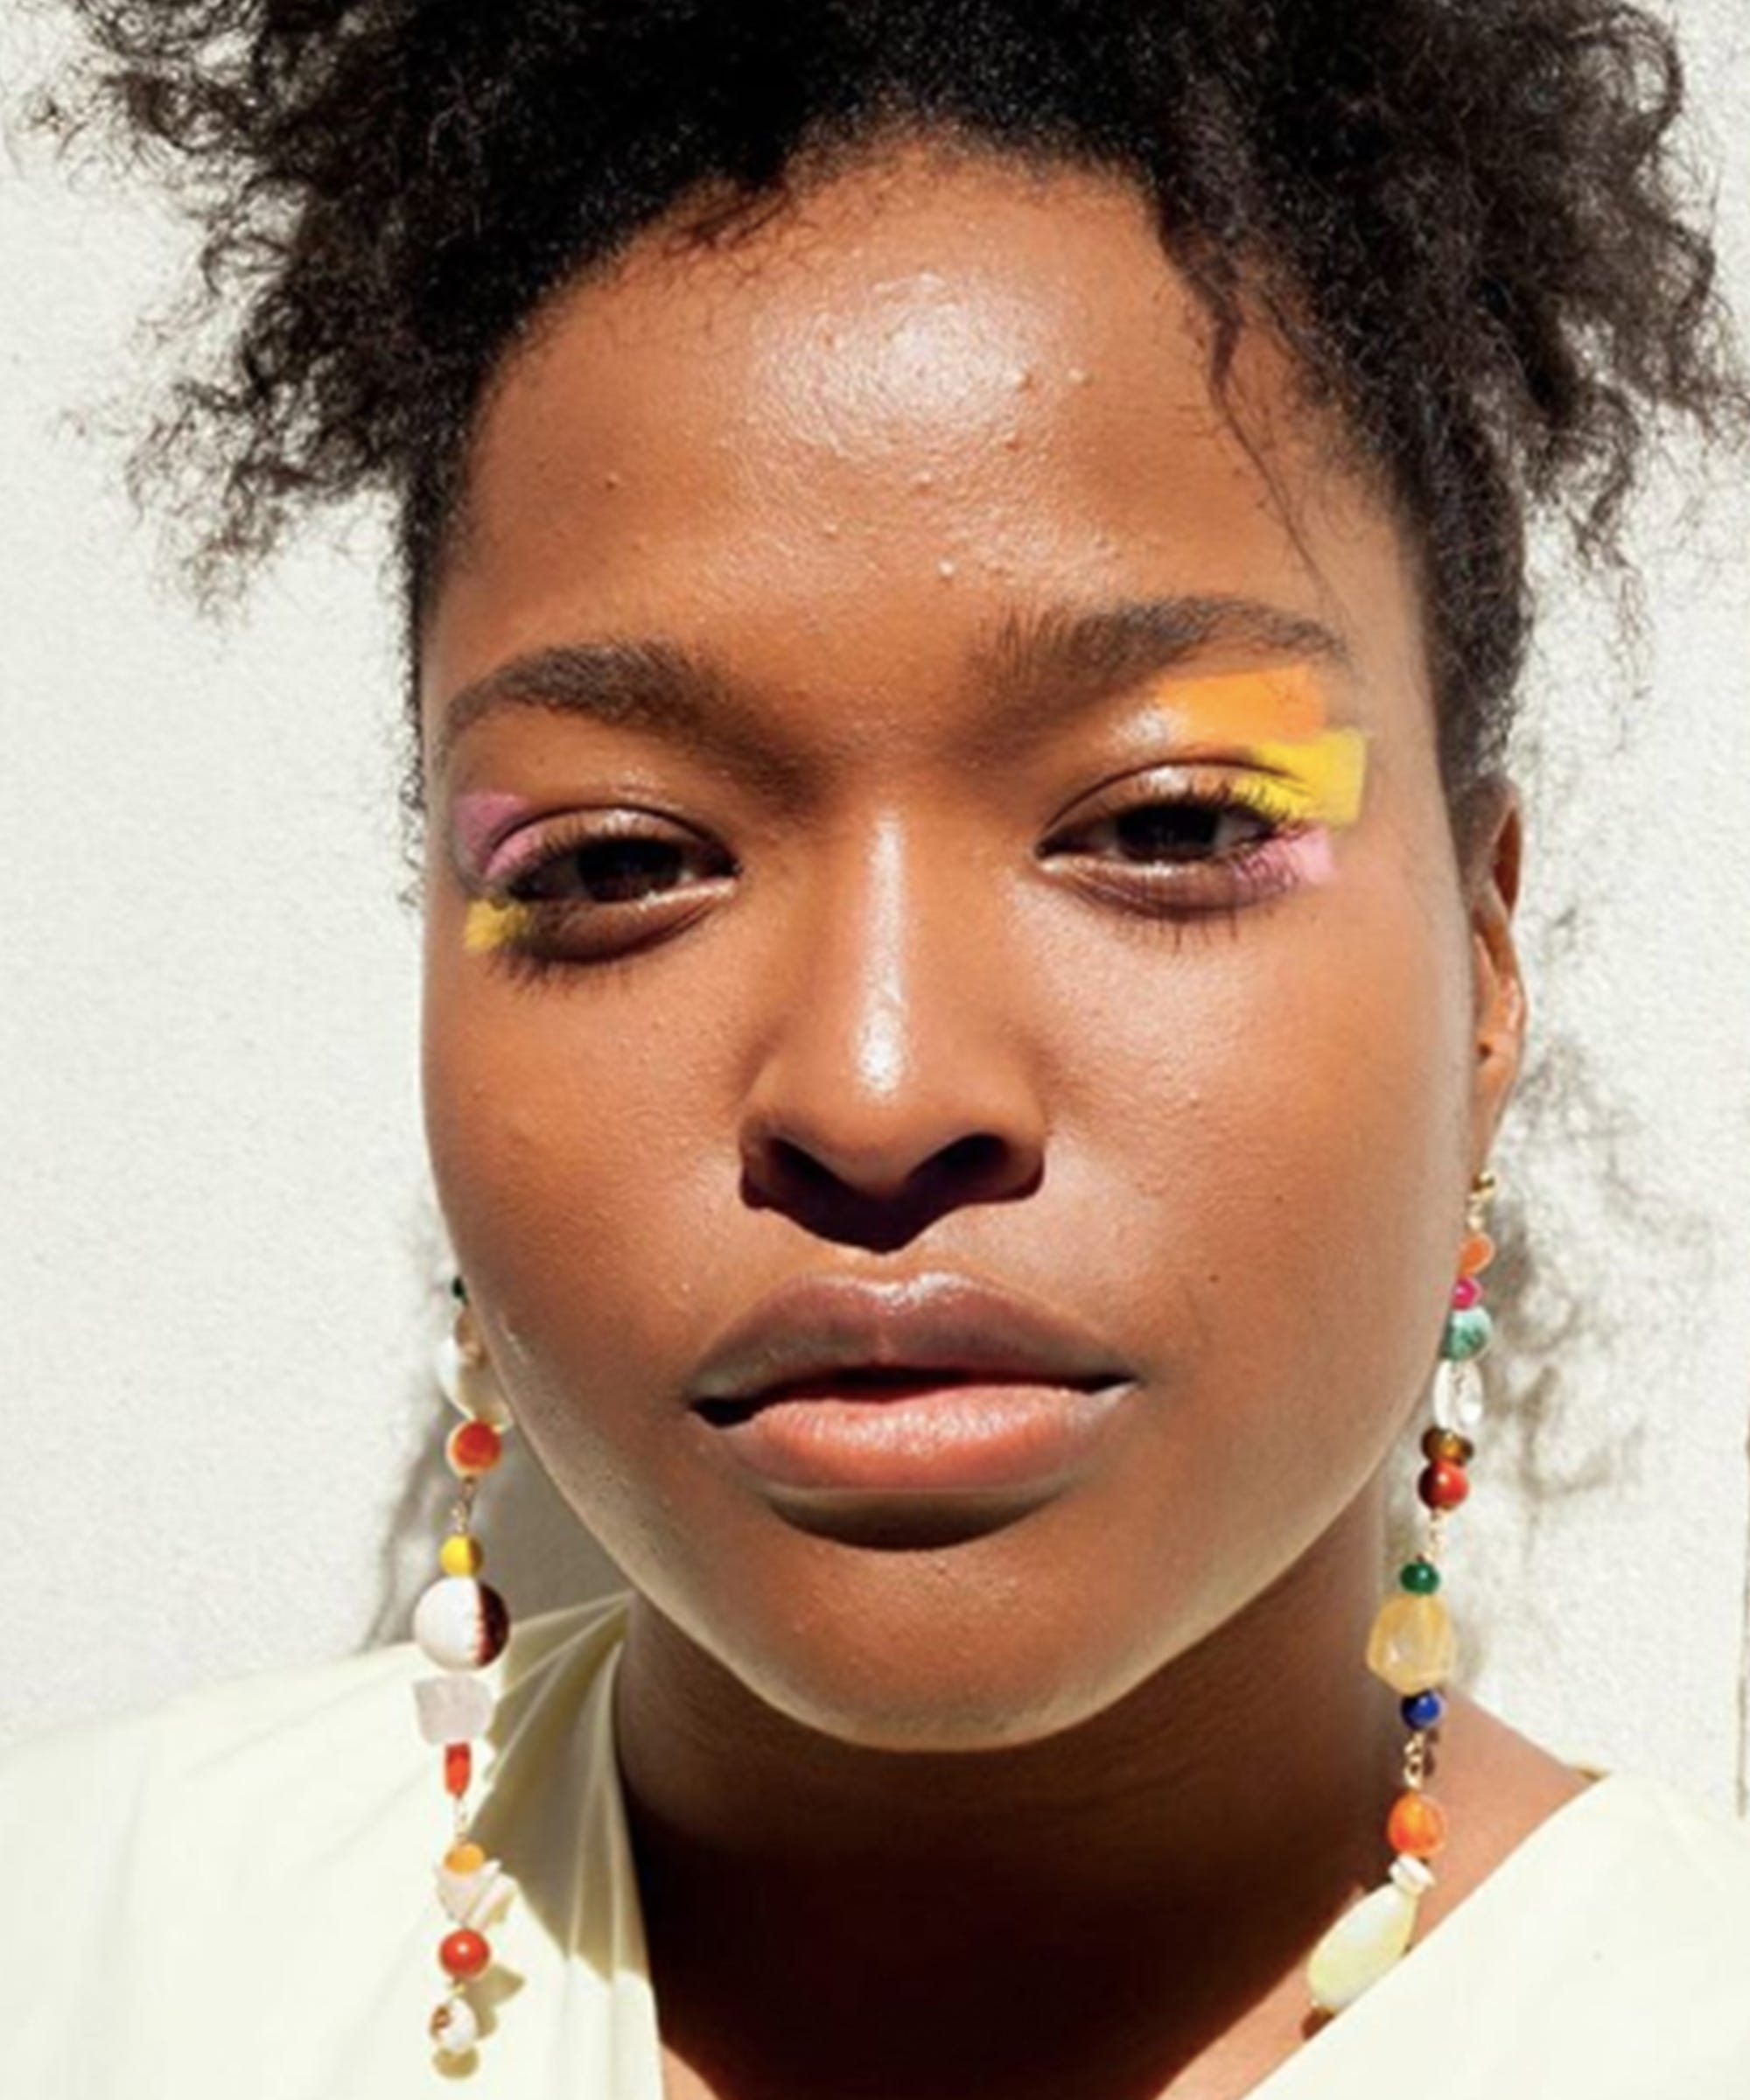 Trend Alert: Diamond Eyebrows Are Now aThing